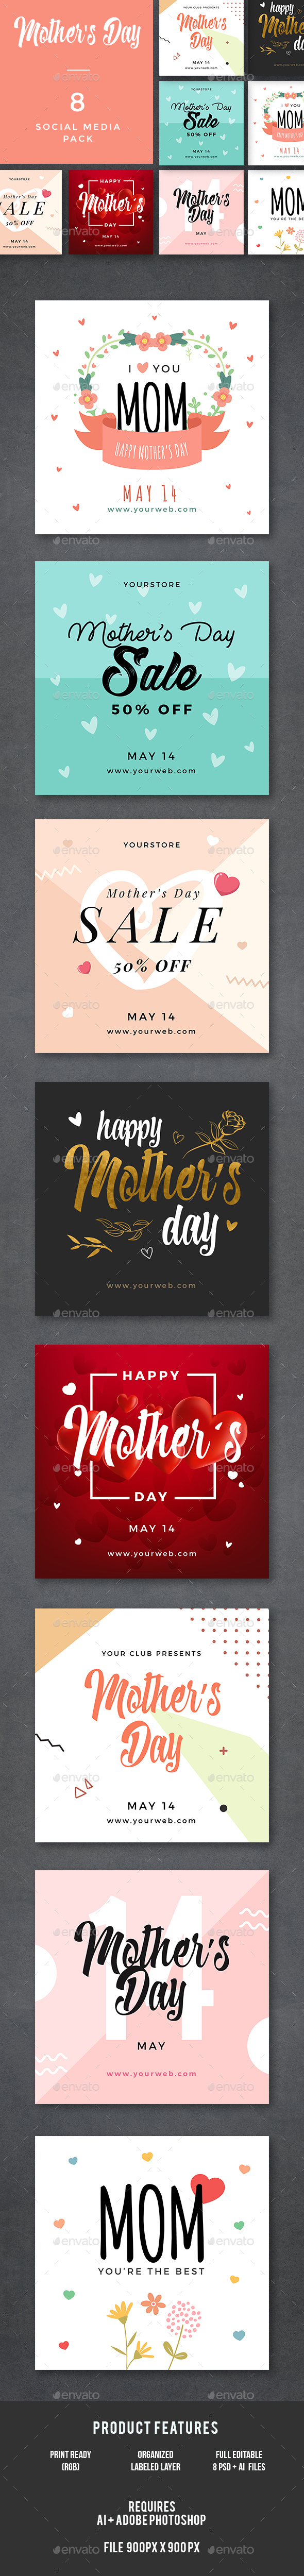 Mothers Day Banners - Banners & Ads Web Elements